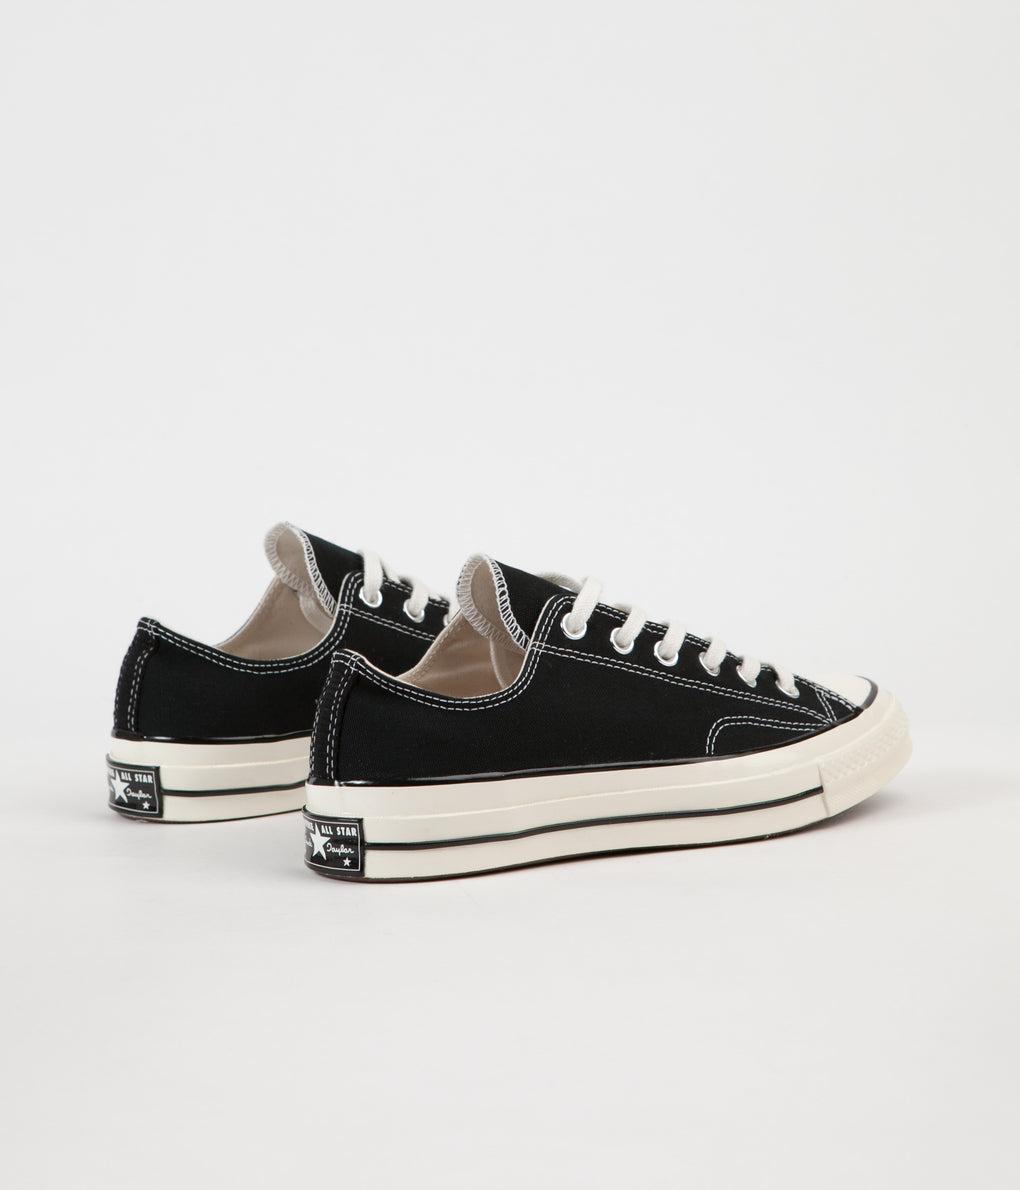 Converse CTAS 70's Ox Shoes - Black